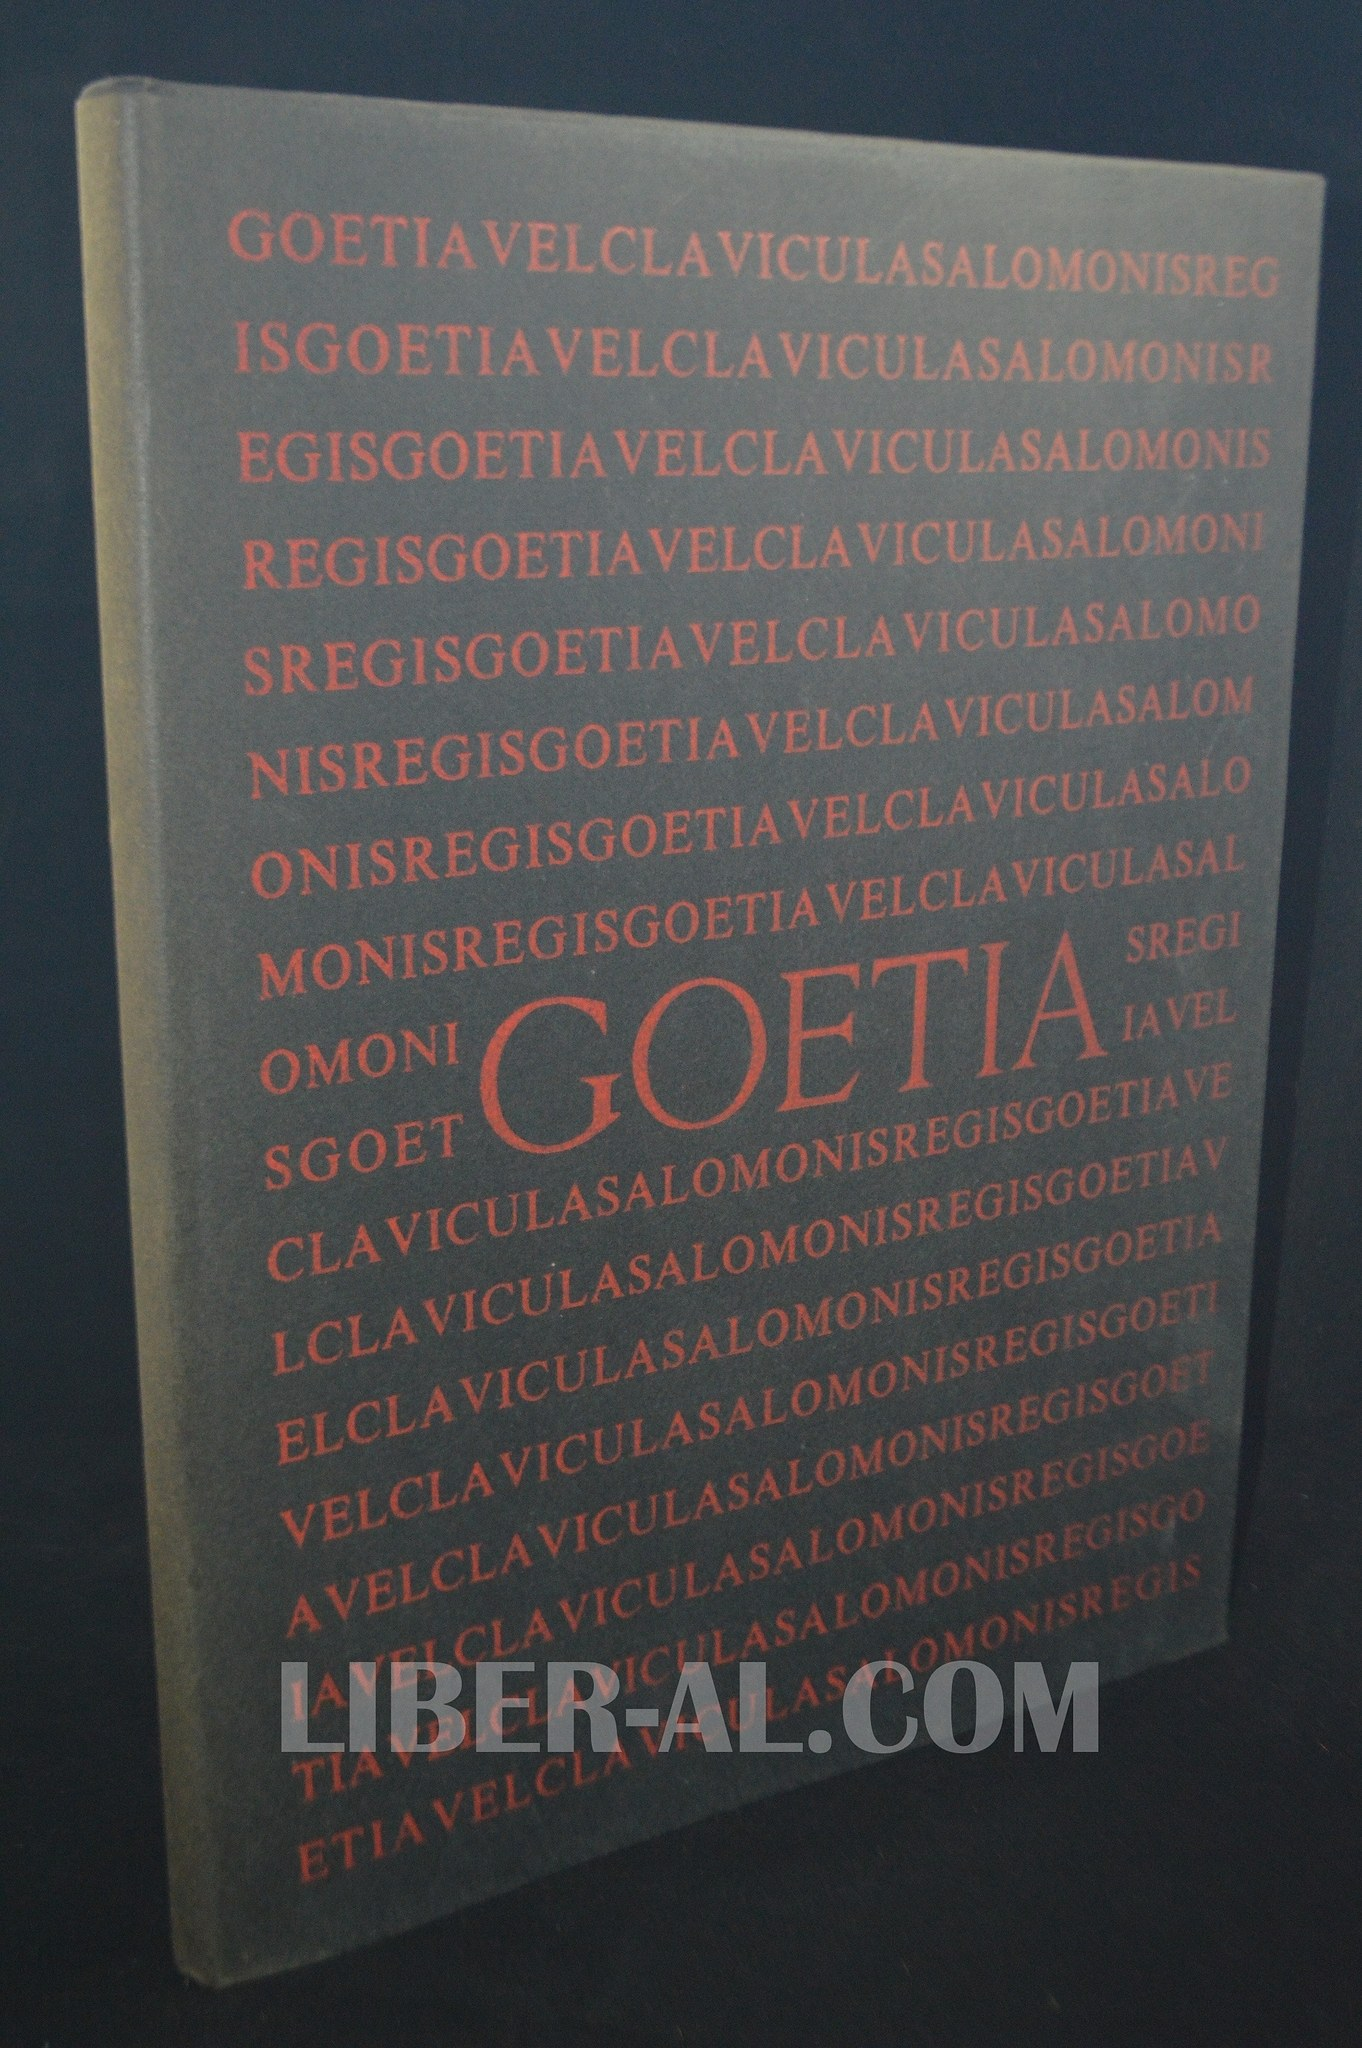 THE BOOK OF THE GOETIA OF SOLOMON THE KING (1976 EQUINOX EDITION)